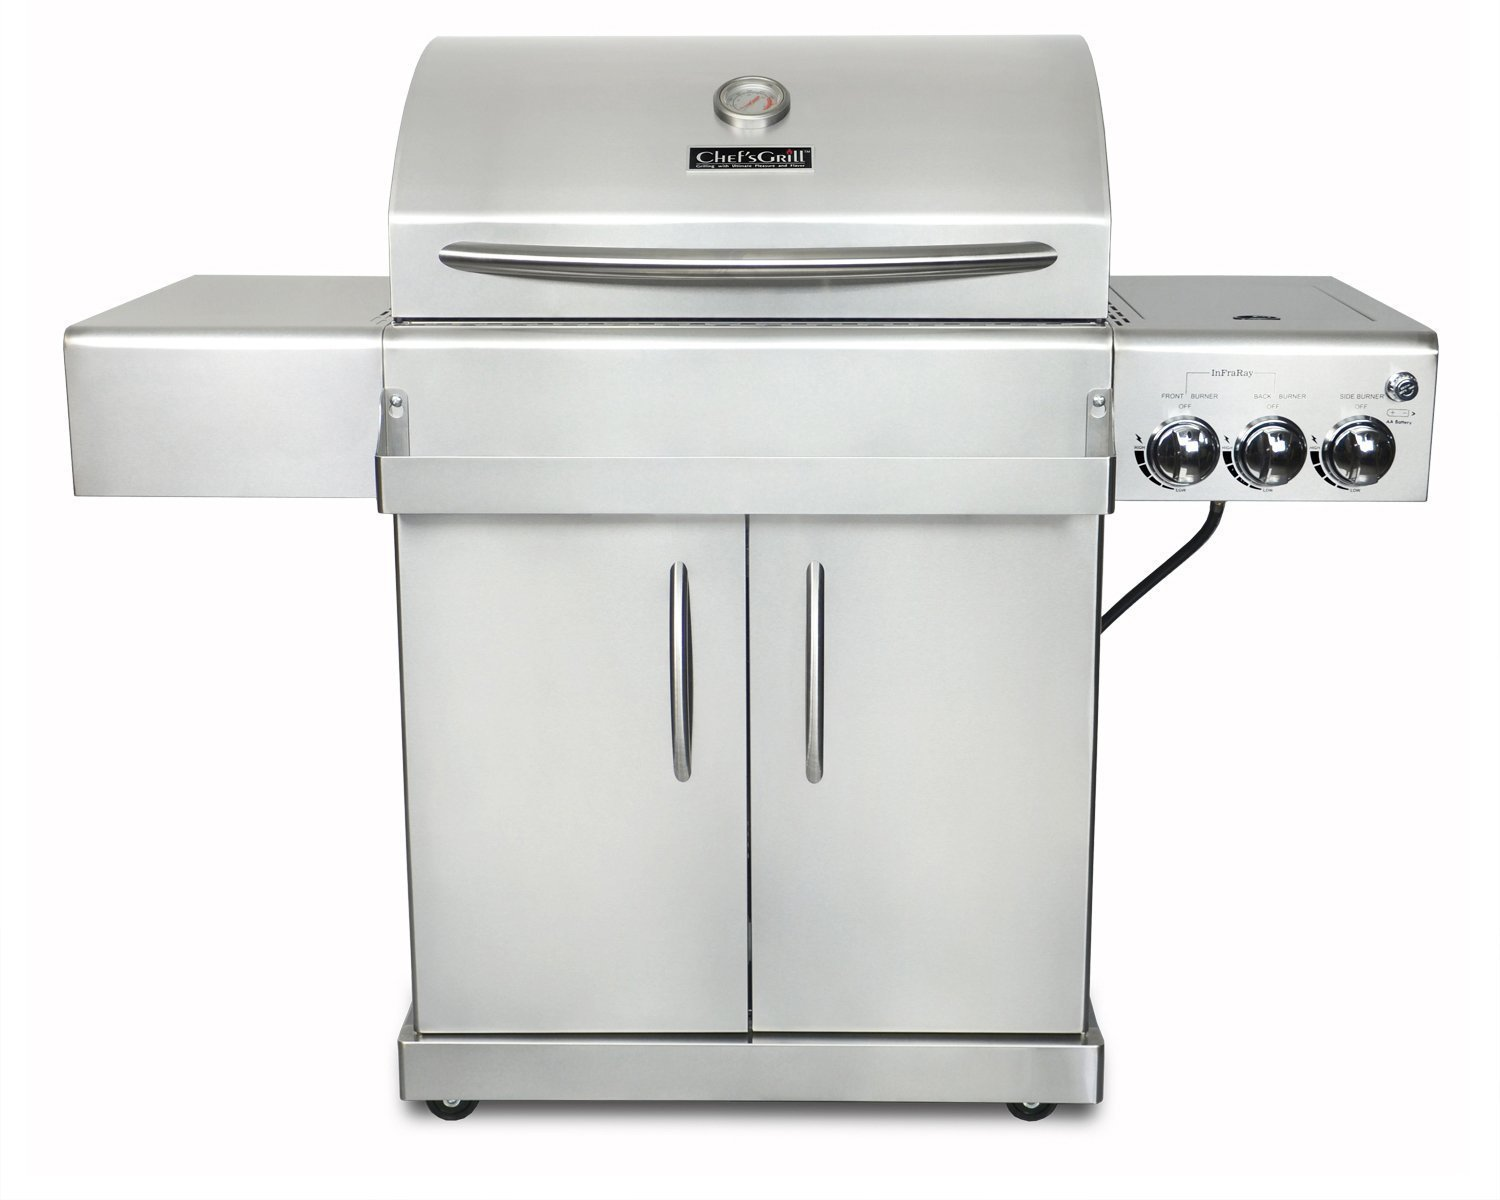 Chef's Grill IR2818-1 61500 BTU Infrared Gas Grill Review